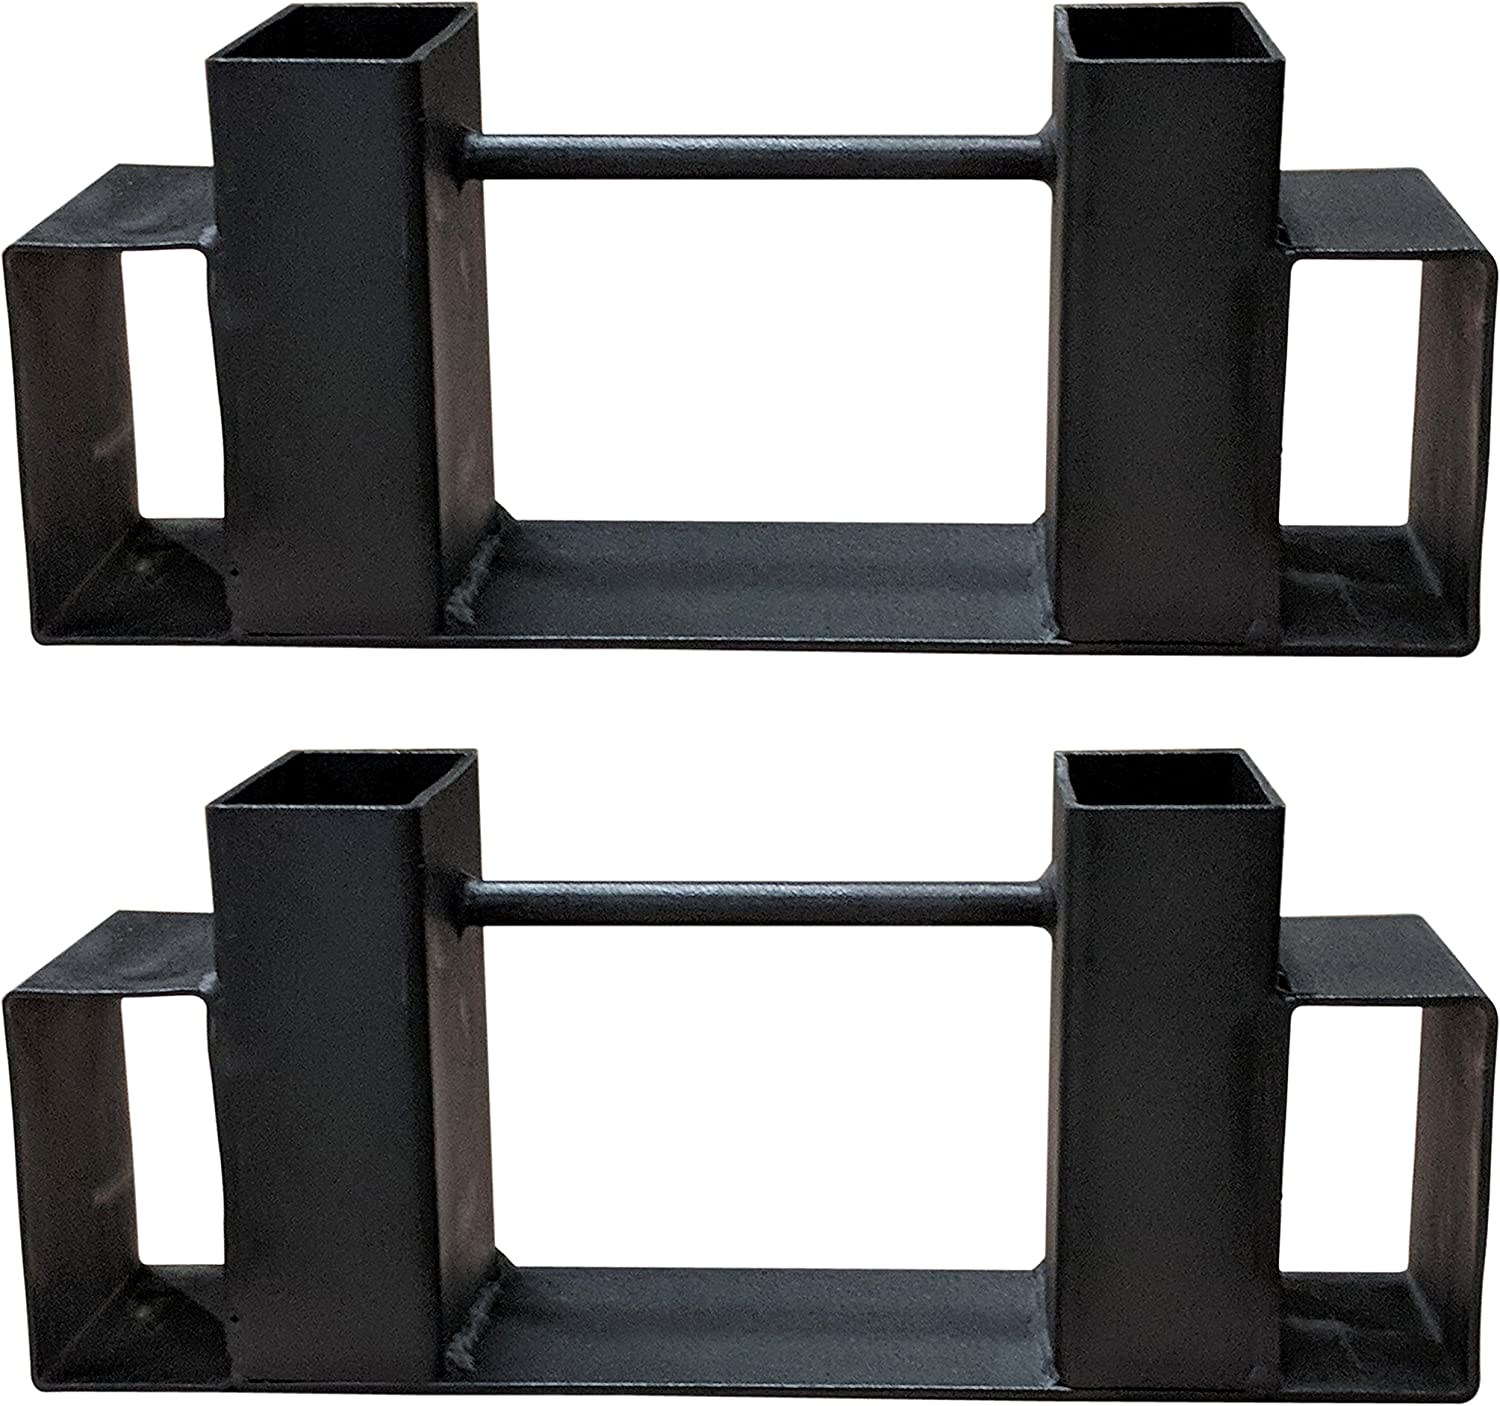 Titan Steel Log Rack Bracket Kit DIY